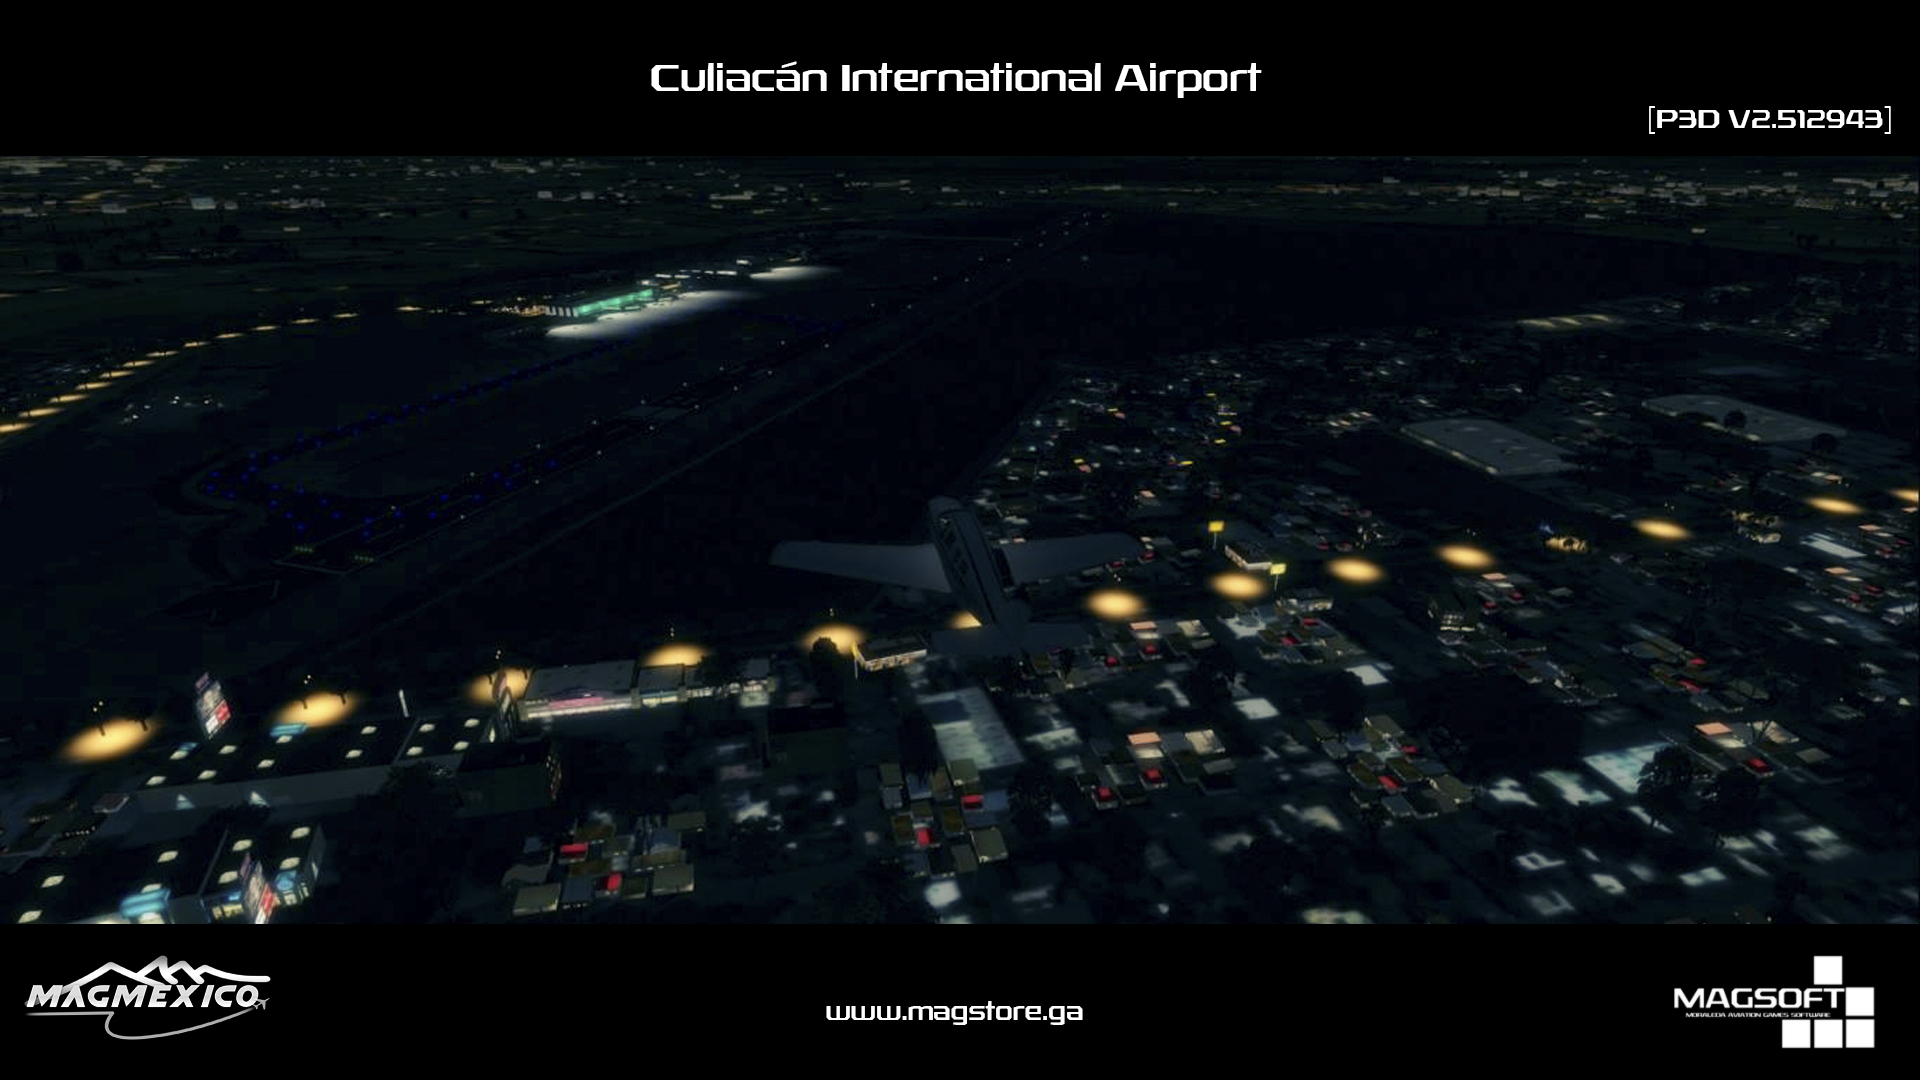 MAGMEXICO - CULIACÁN INTERNATIONAL AIRPORT P3D